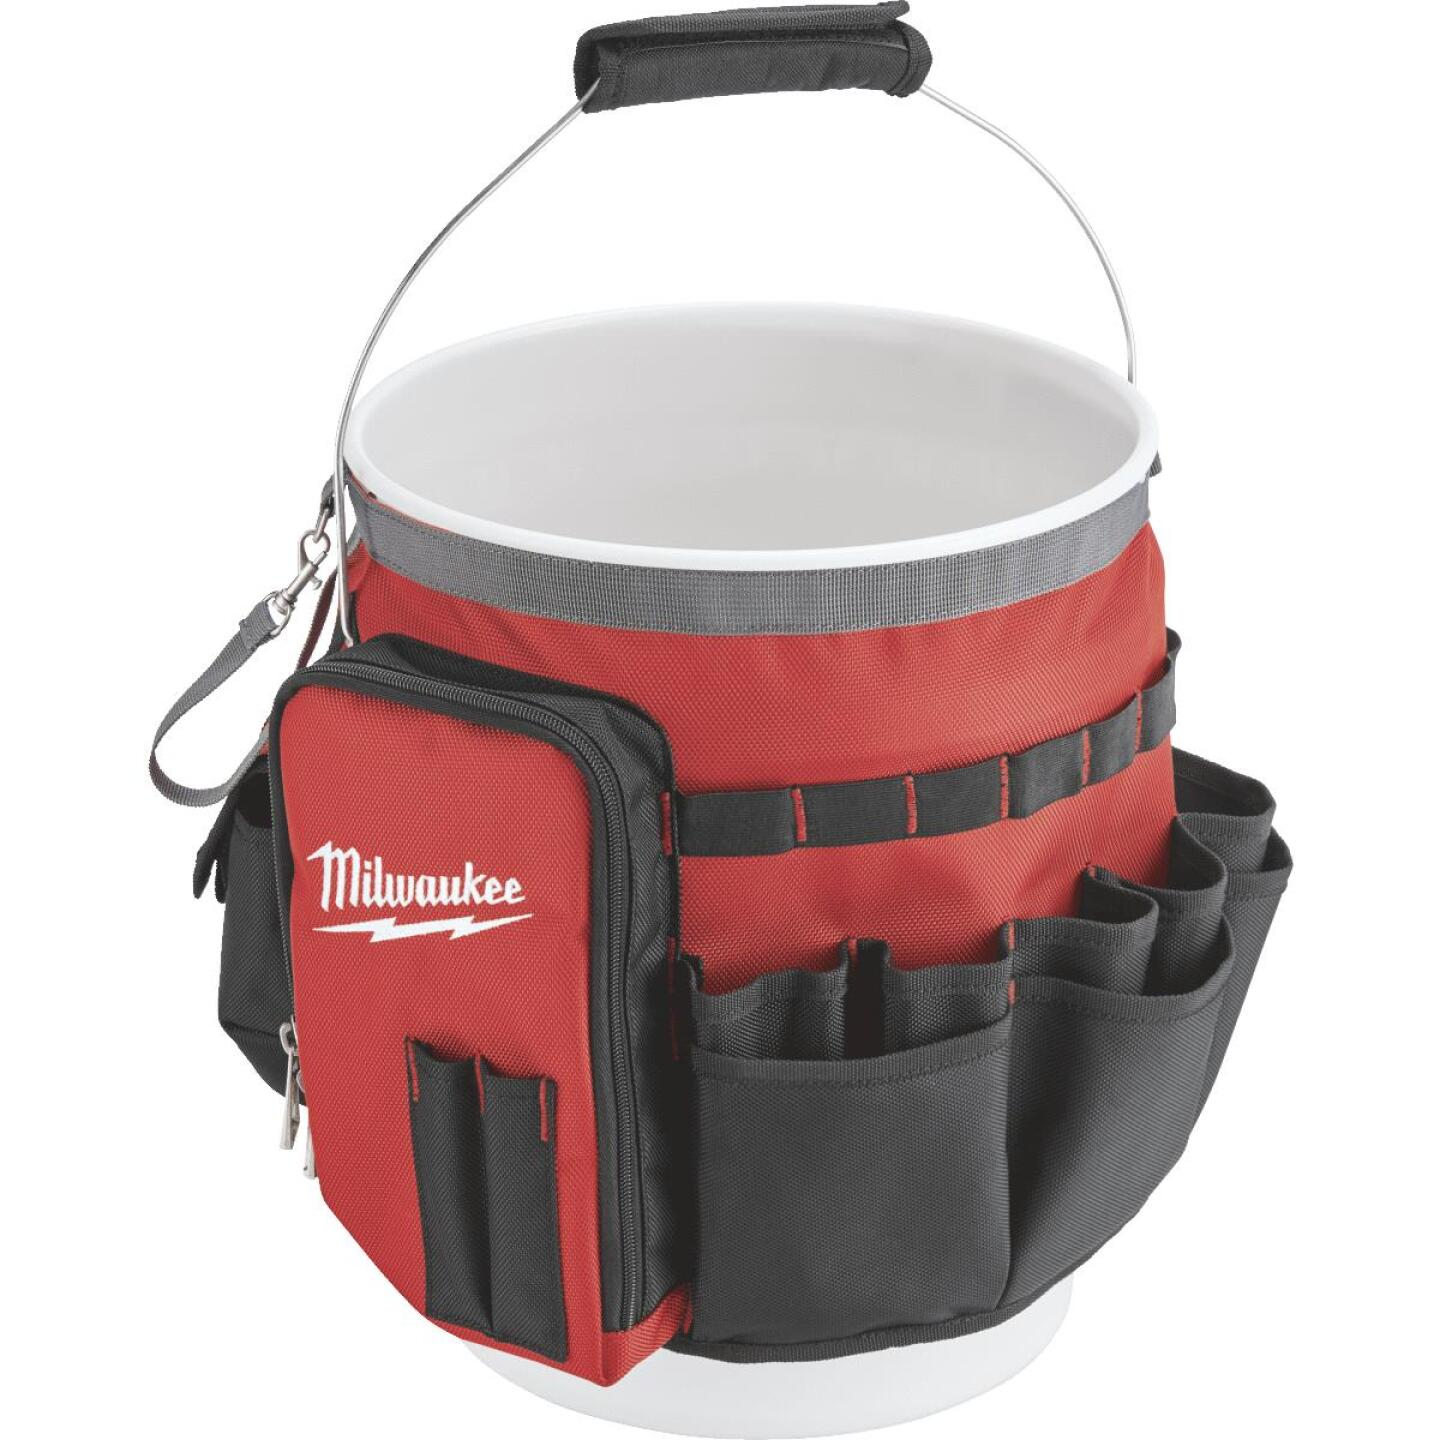 Milwaukee 32-Pocket Tool Bucket Organizer Image 1